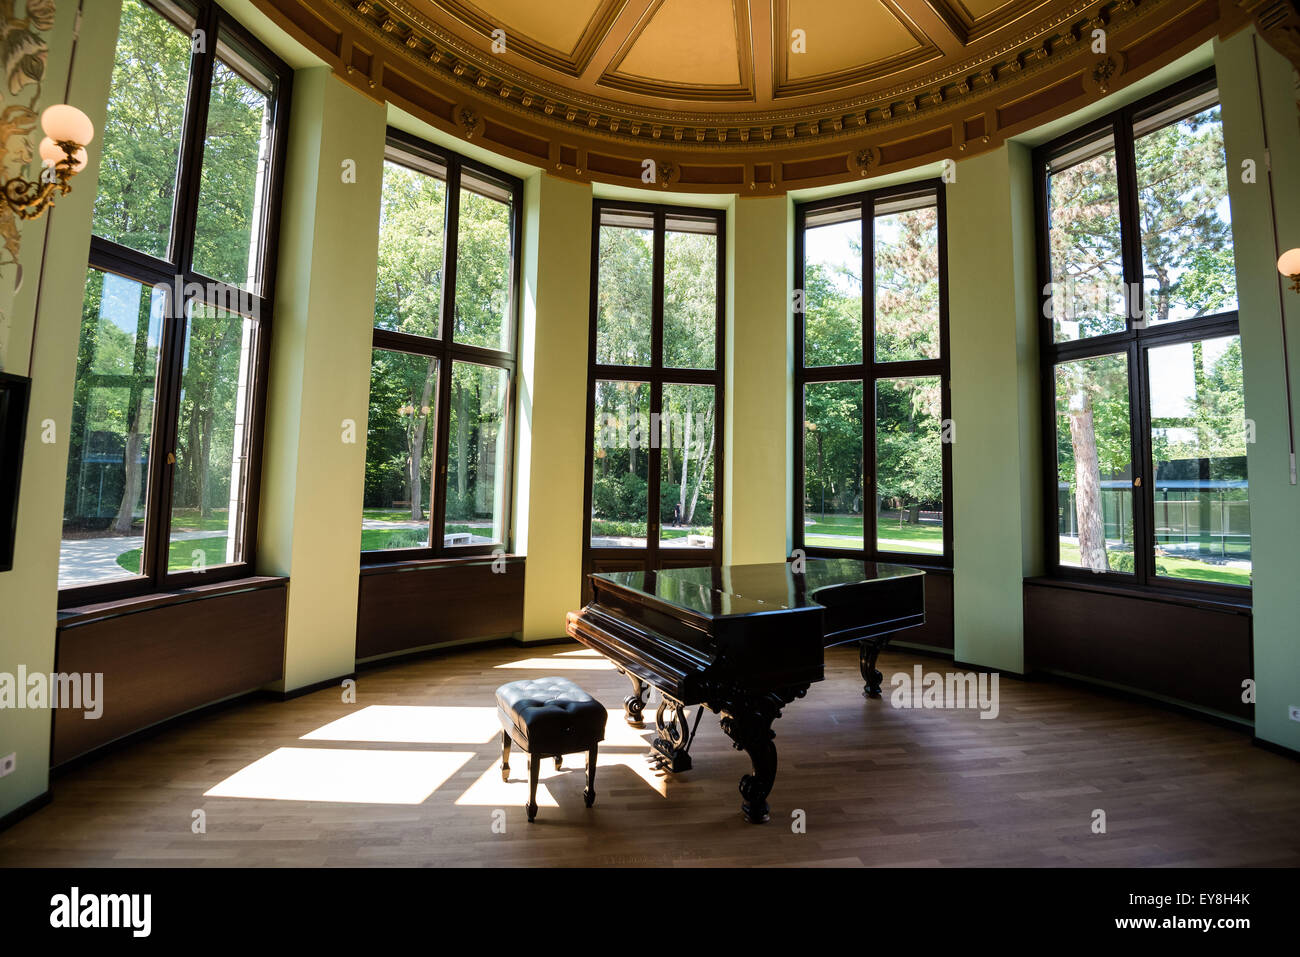 Bayreuth, Germany. 24th July, 2015. A grand piano in Haus Wahnfried ...